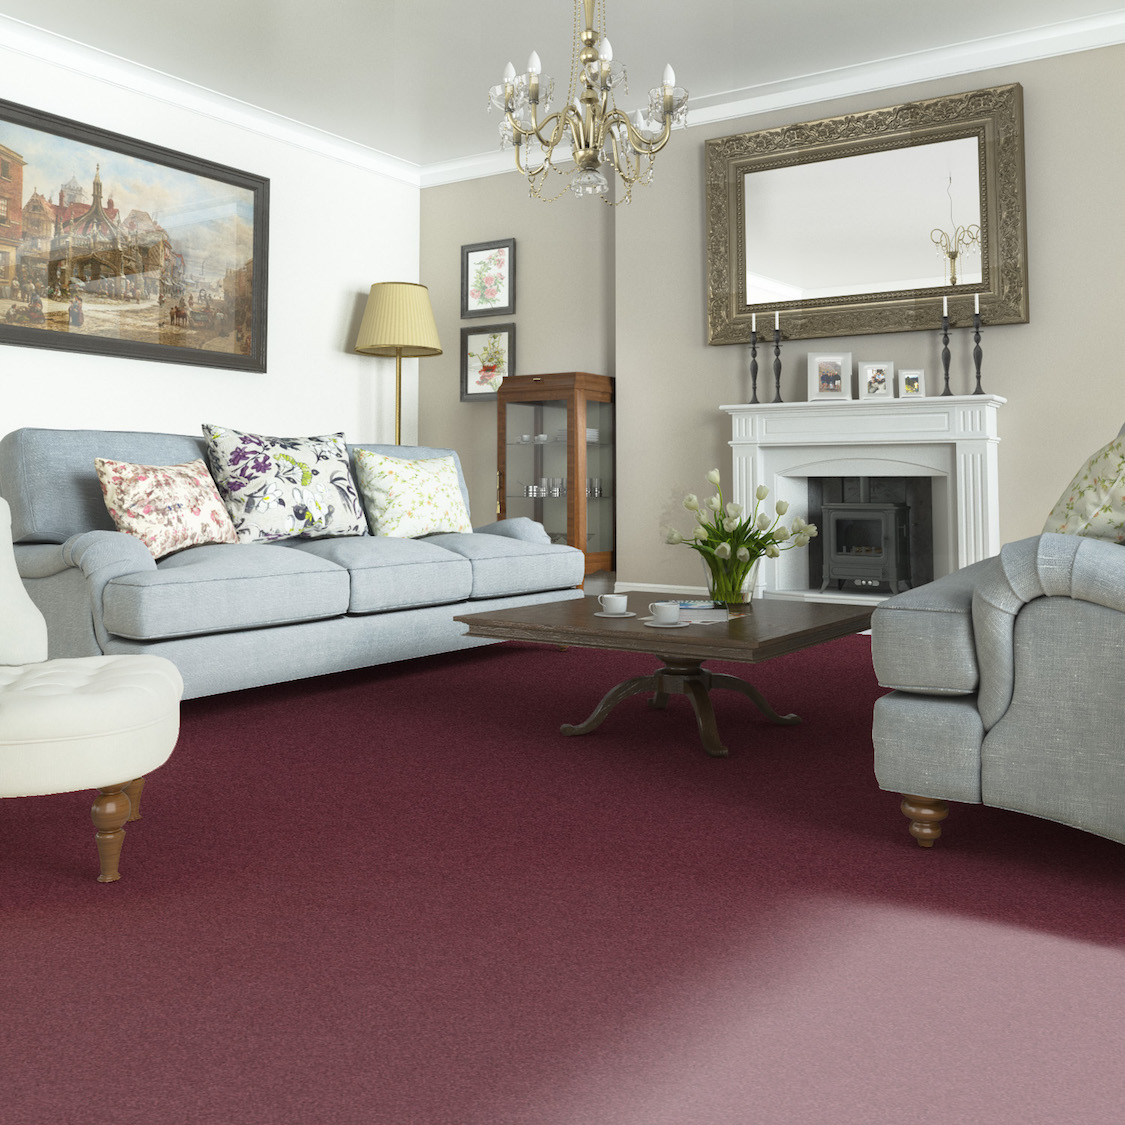 Axminster Carpets Devonia Plains in Berry Burst, perfect for this Victorian lounge